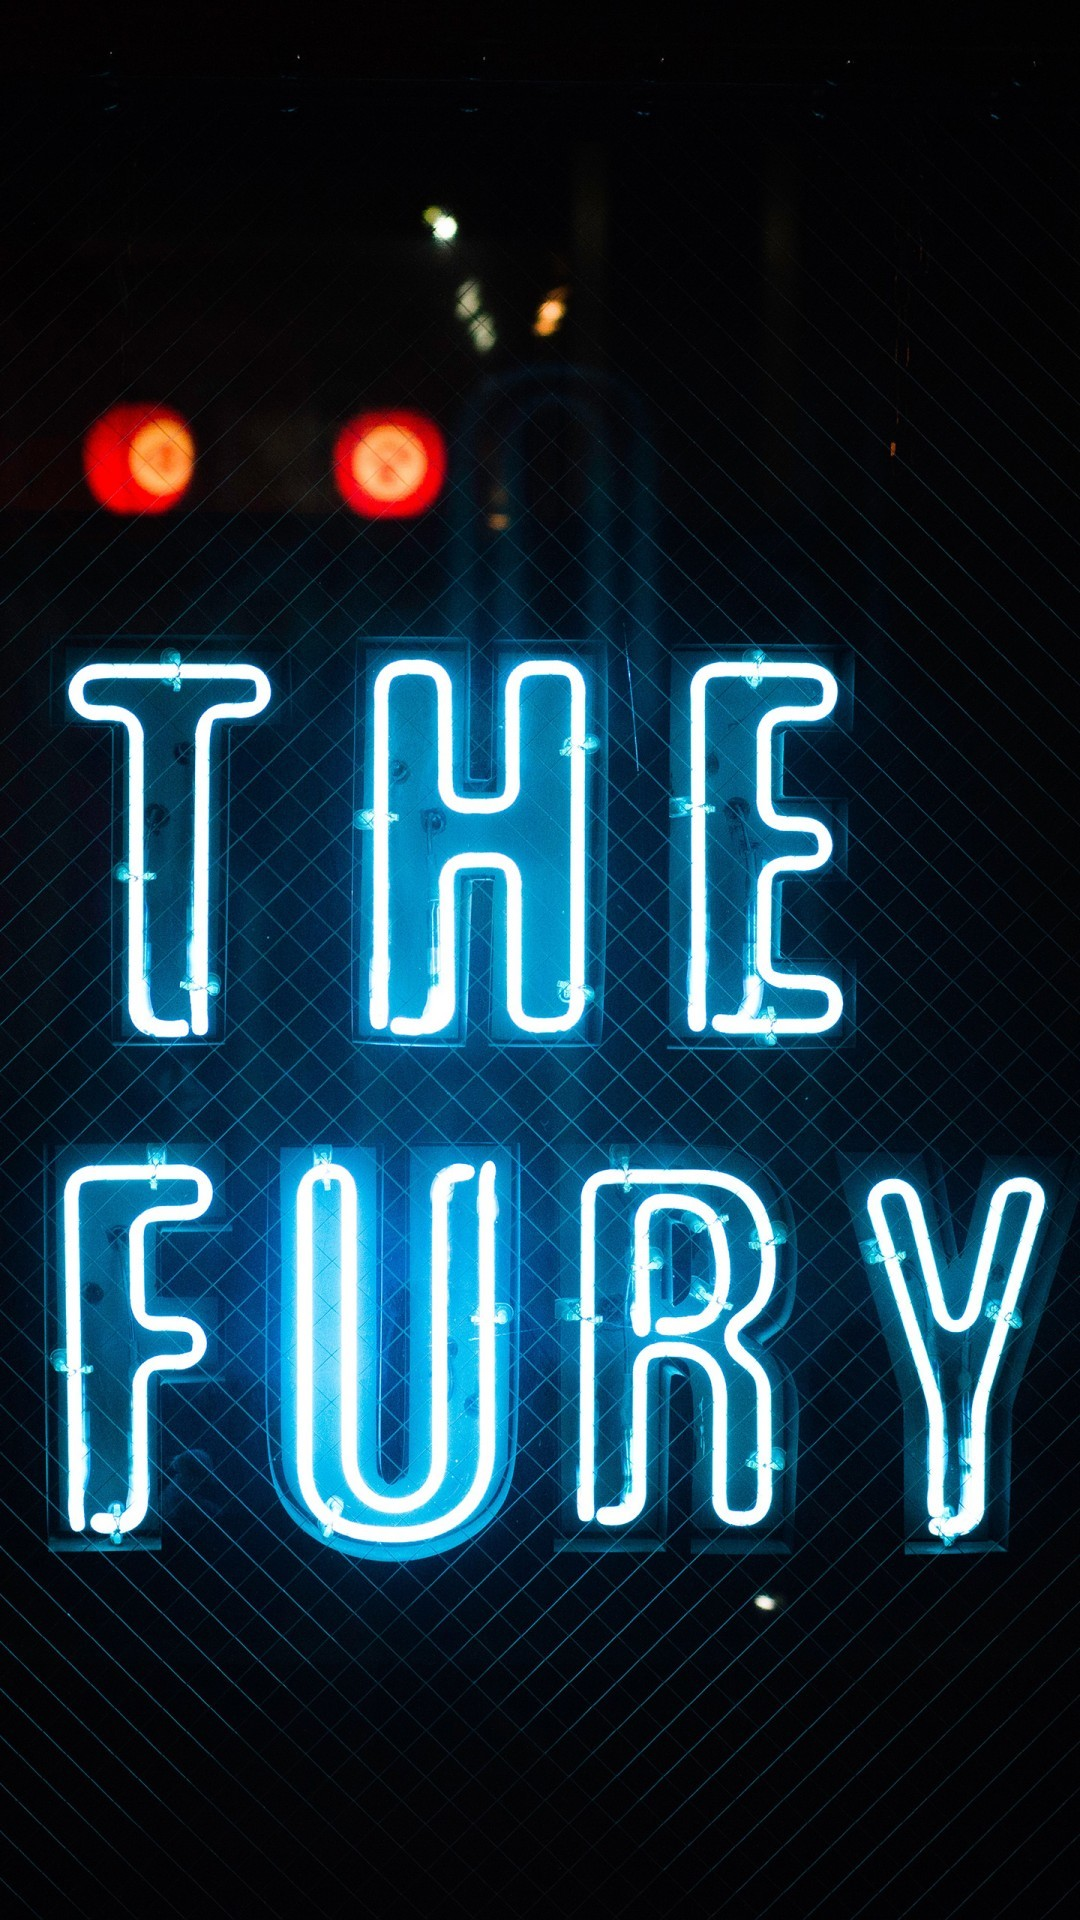 Free The Fury Neon Sign phone wallpaper by princess_jenna